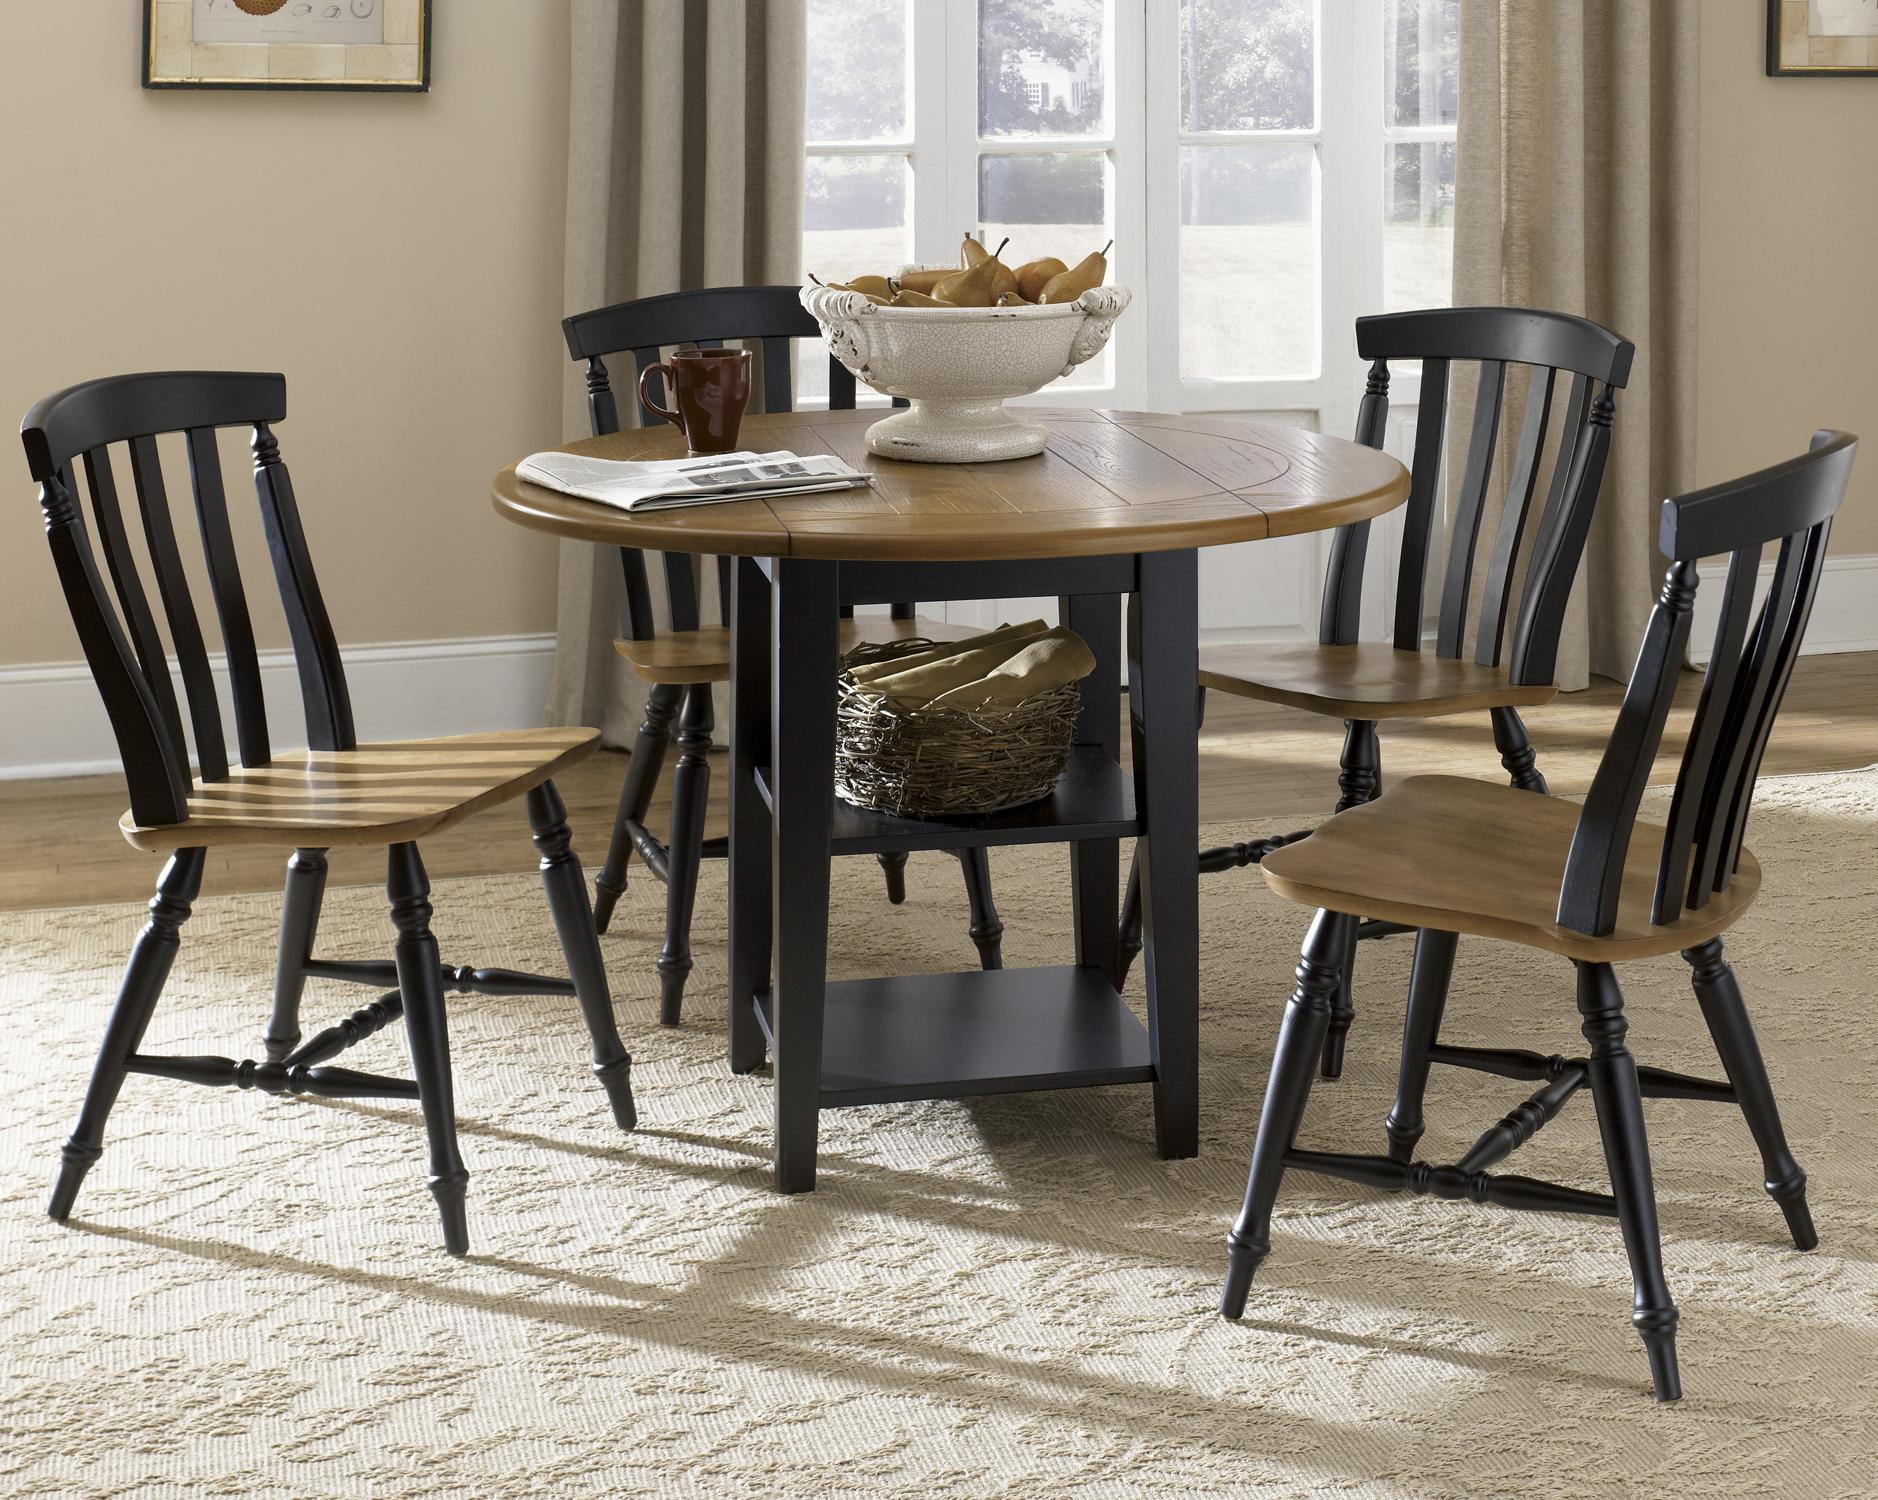 Al Fresco II 5 Piece Drop Leaf Table and Chairs Set by Liberty Furniture at Lapeer Furniture & Mattress Center